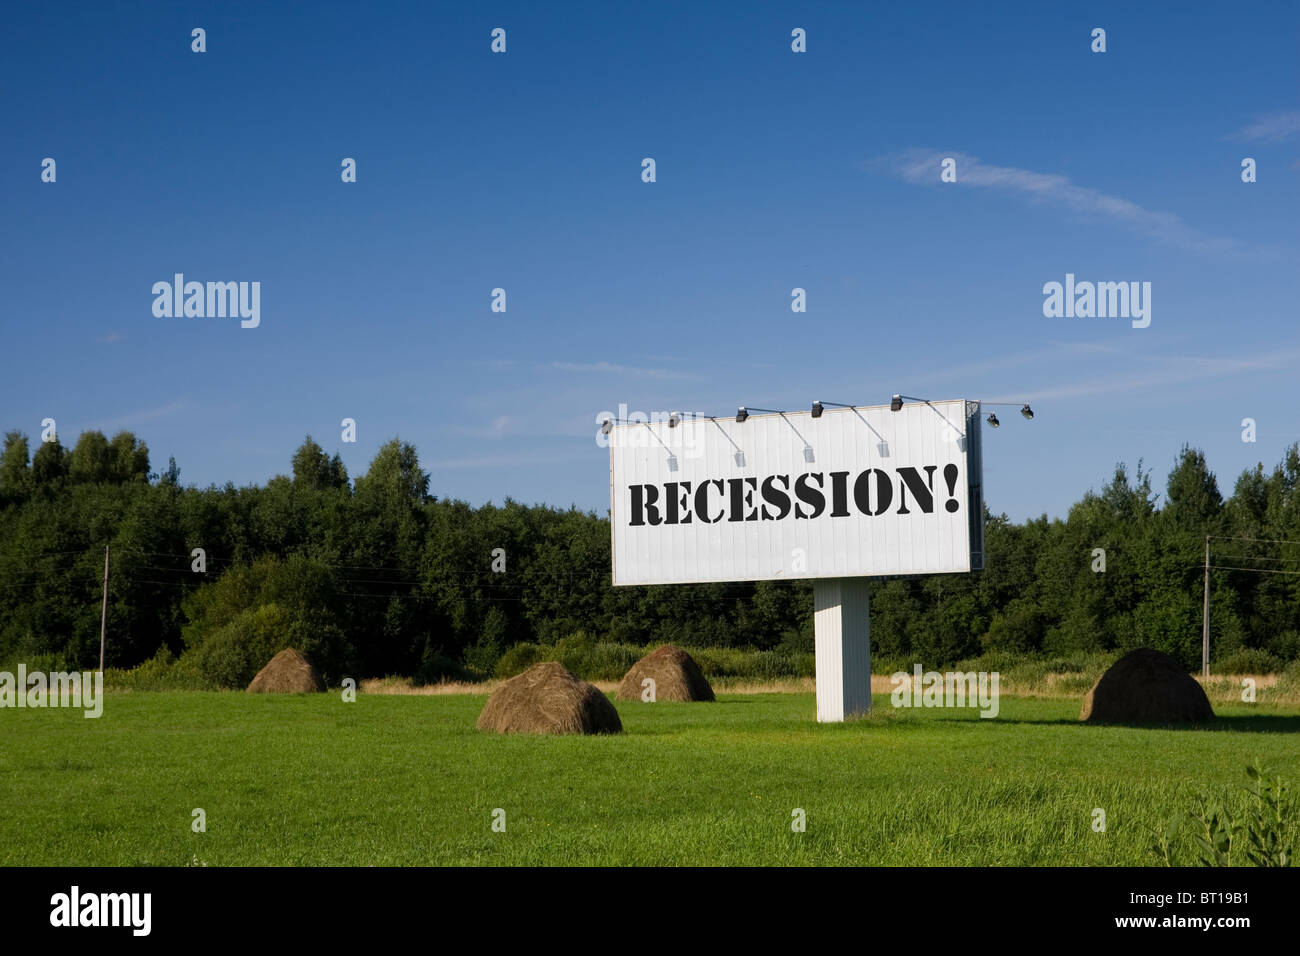 Billboard in a field with a word Recession on it. - Stock Image